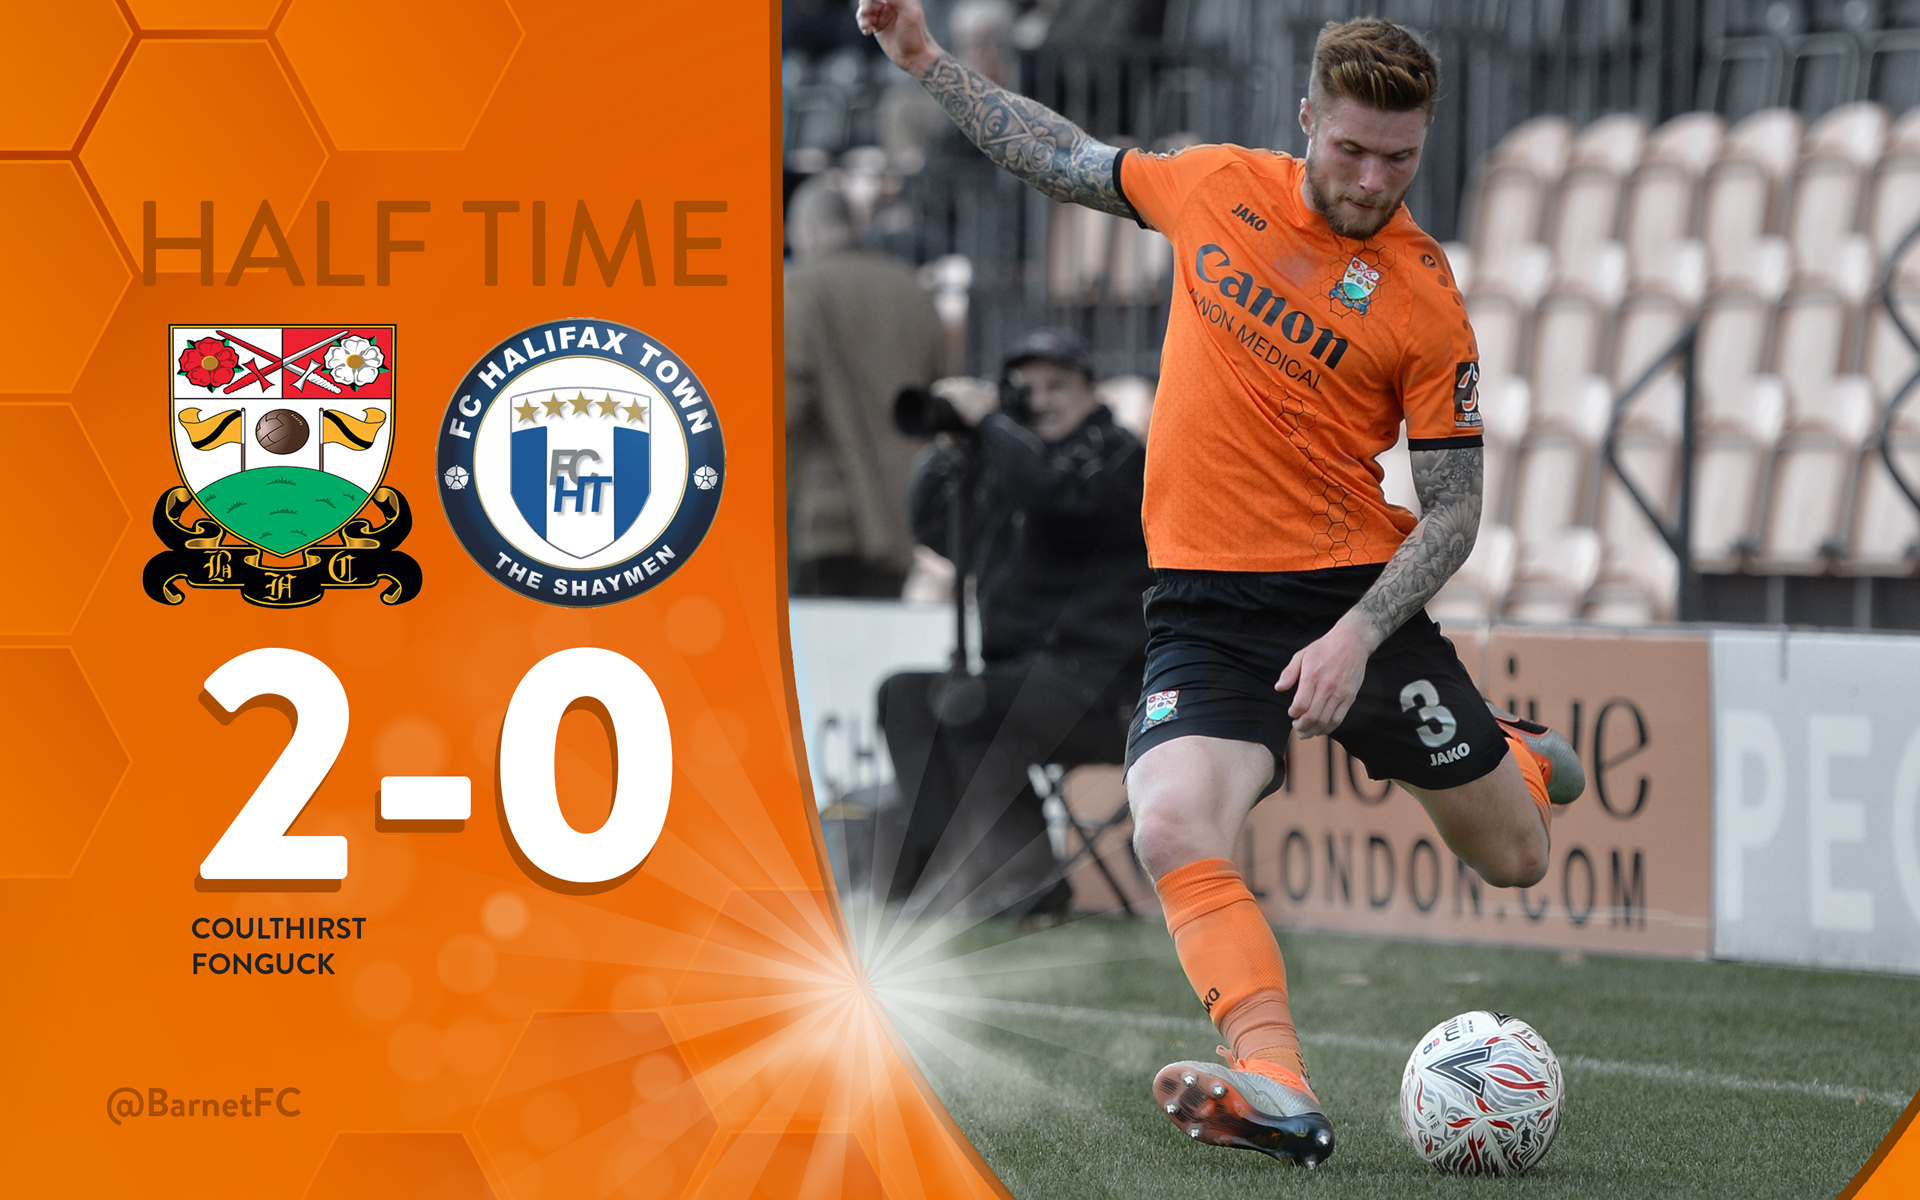 Barnet FC Half Time Score Graphic For Social Media